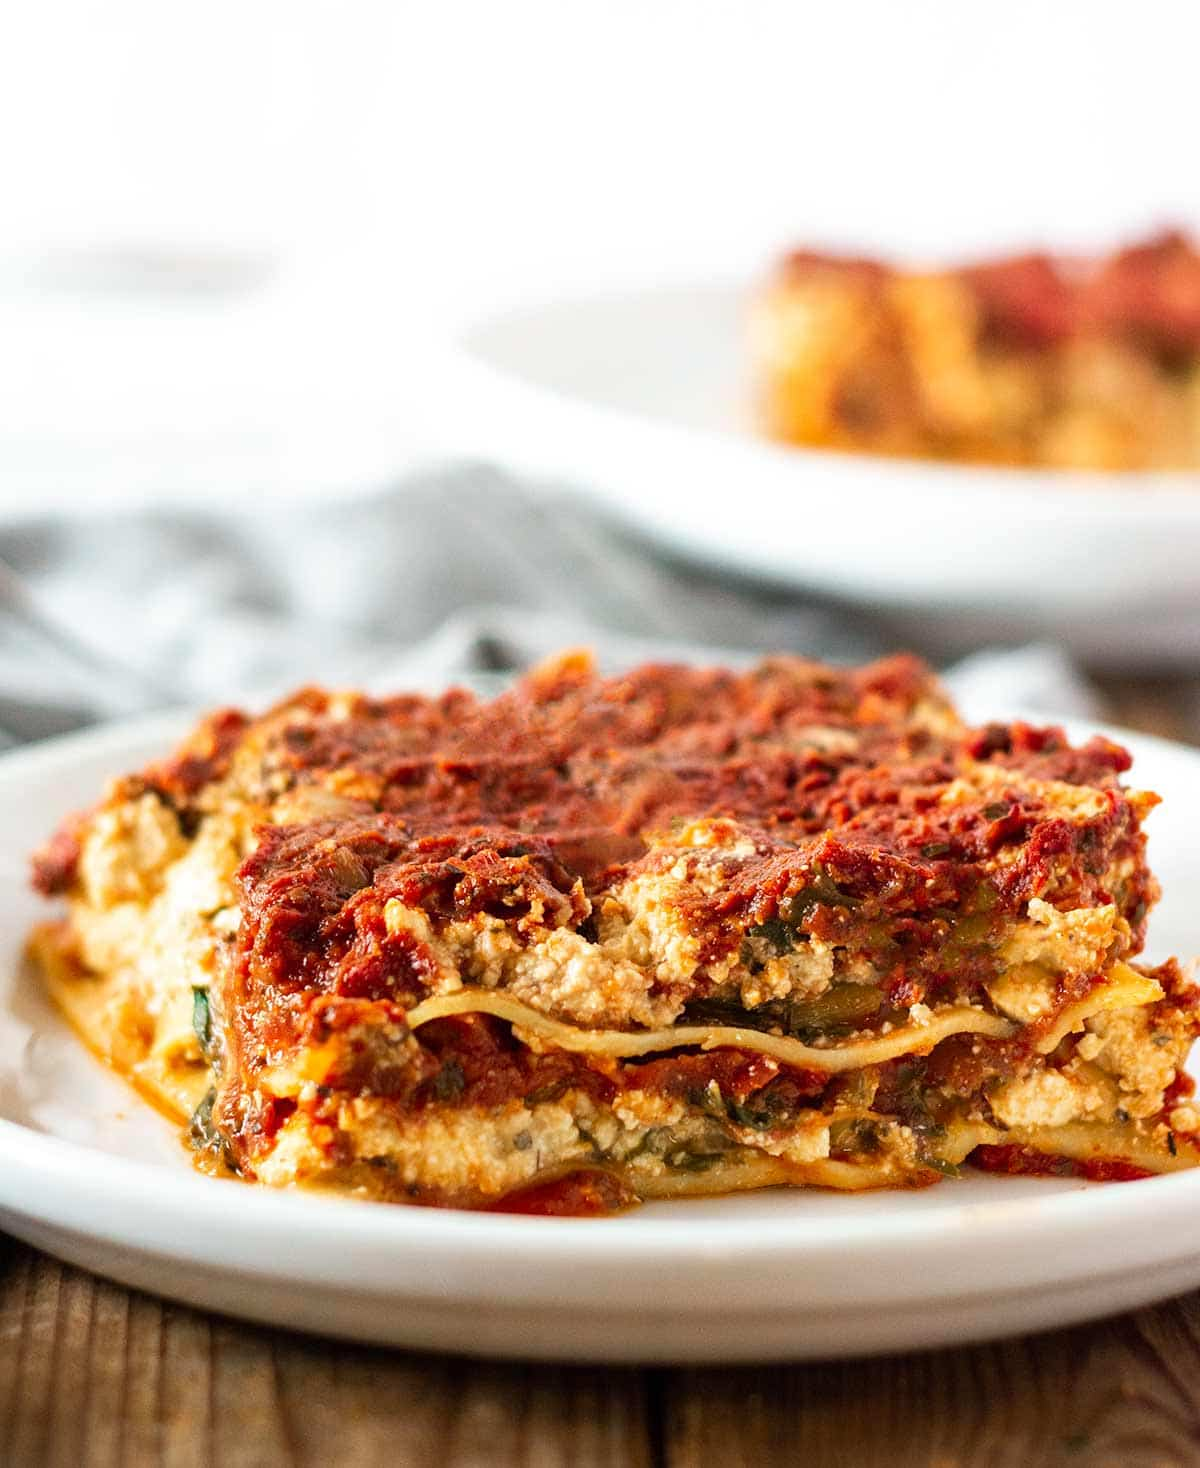 a slice of gluten free lasagna on a white plate